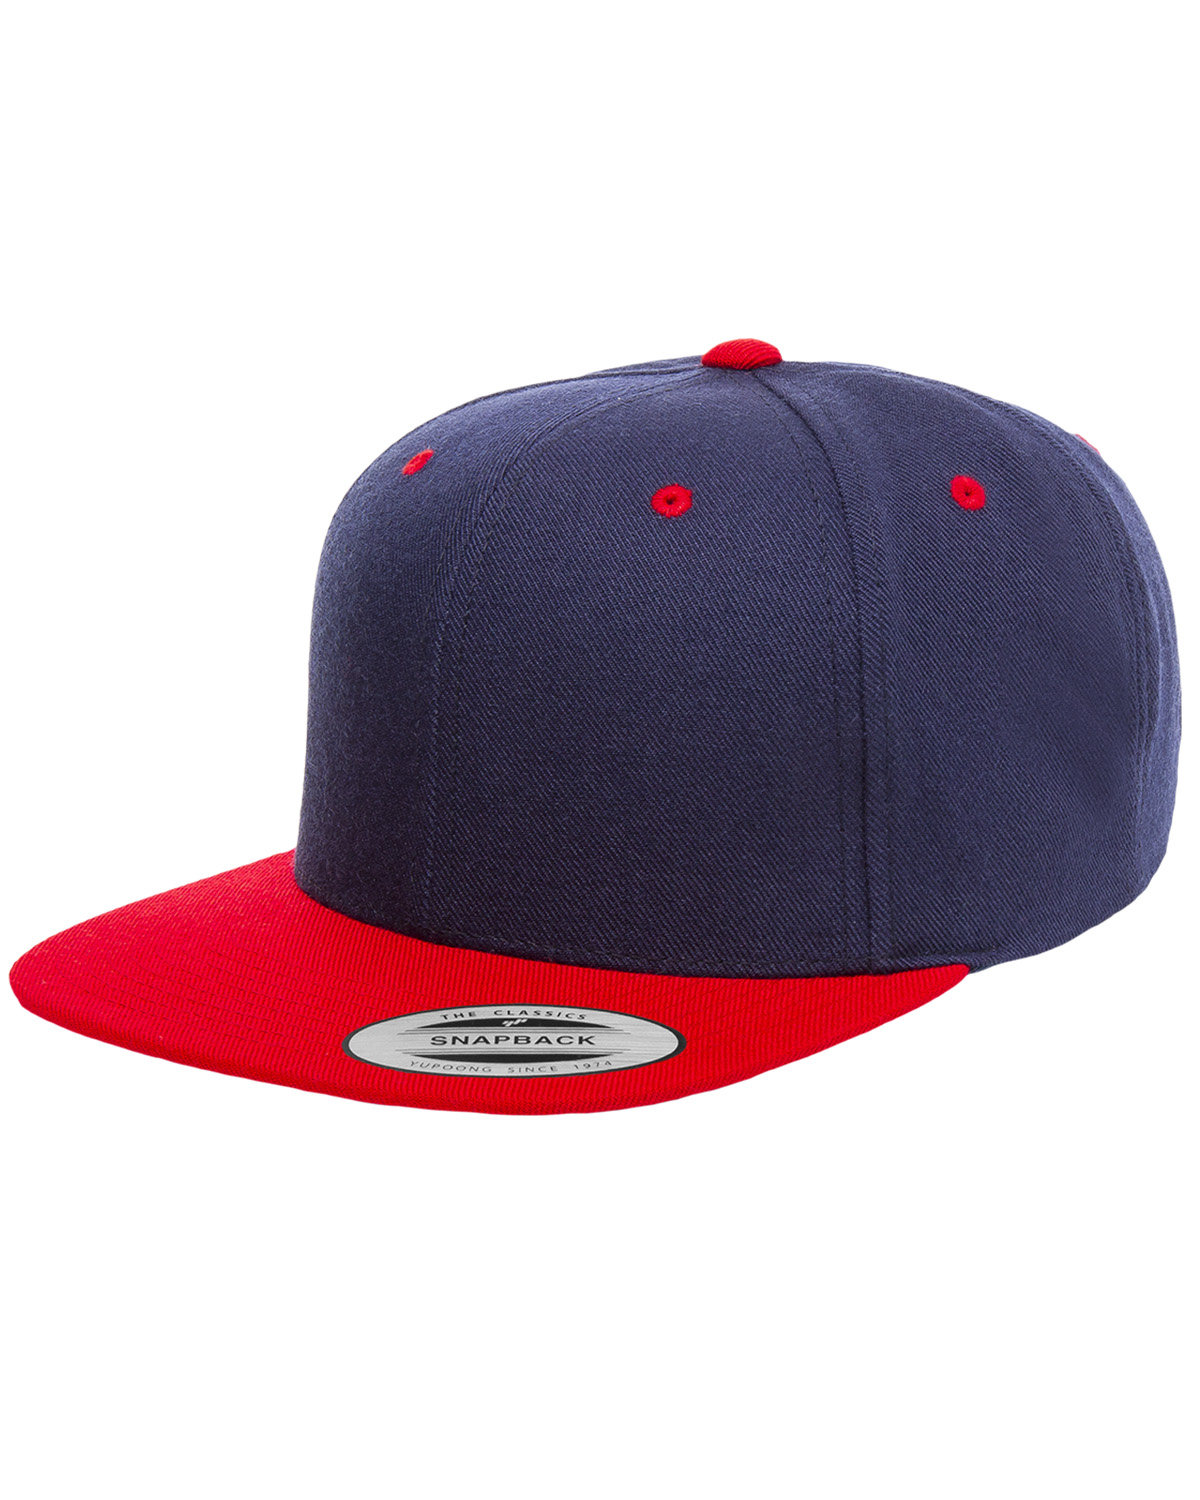 Yupoong Adult 6-Panel Structured Flat Visor ClassicSnapback NAVY/ RED